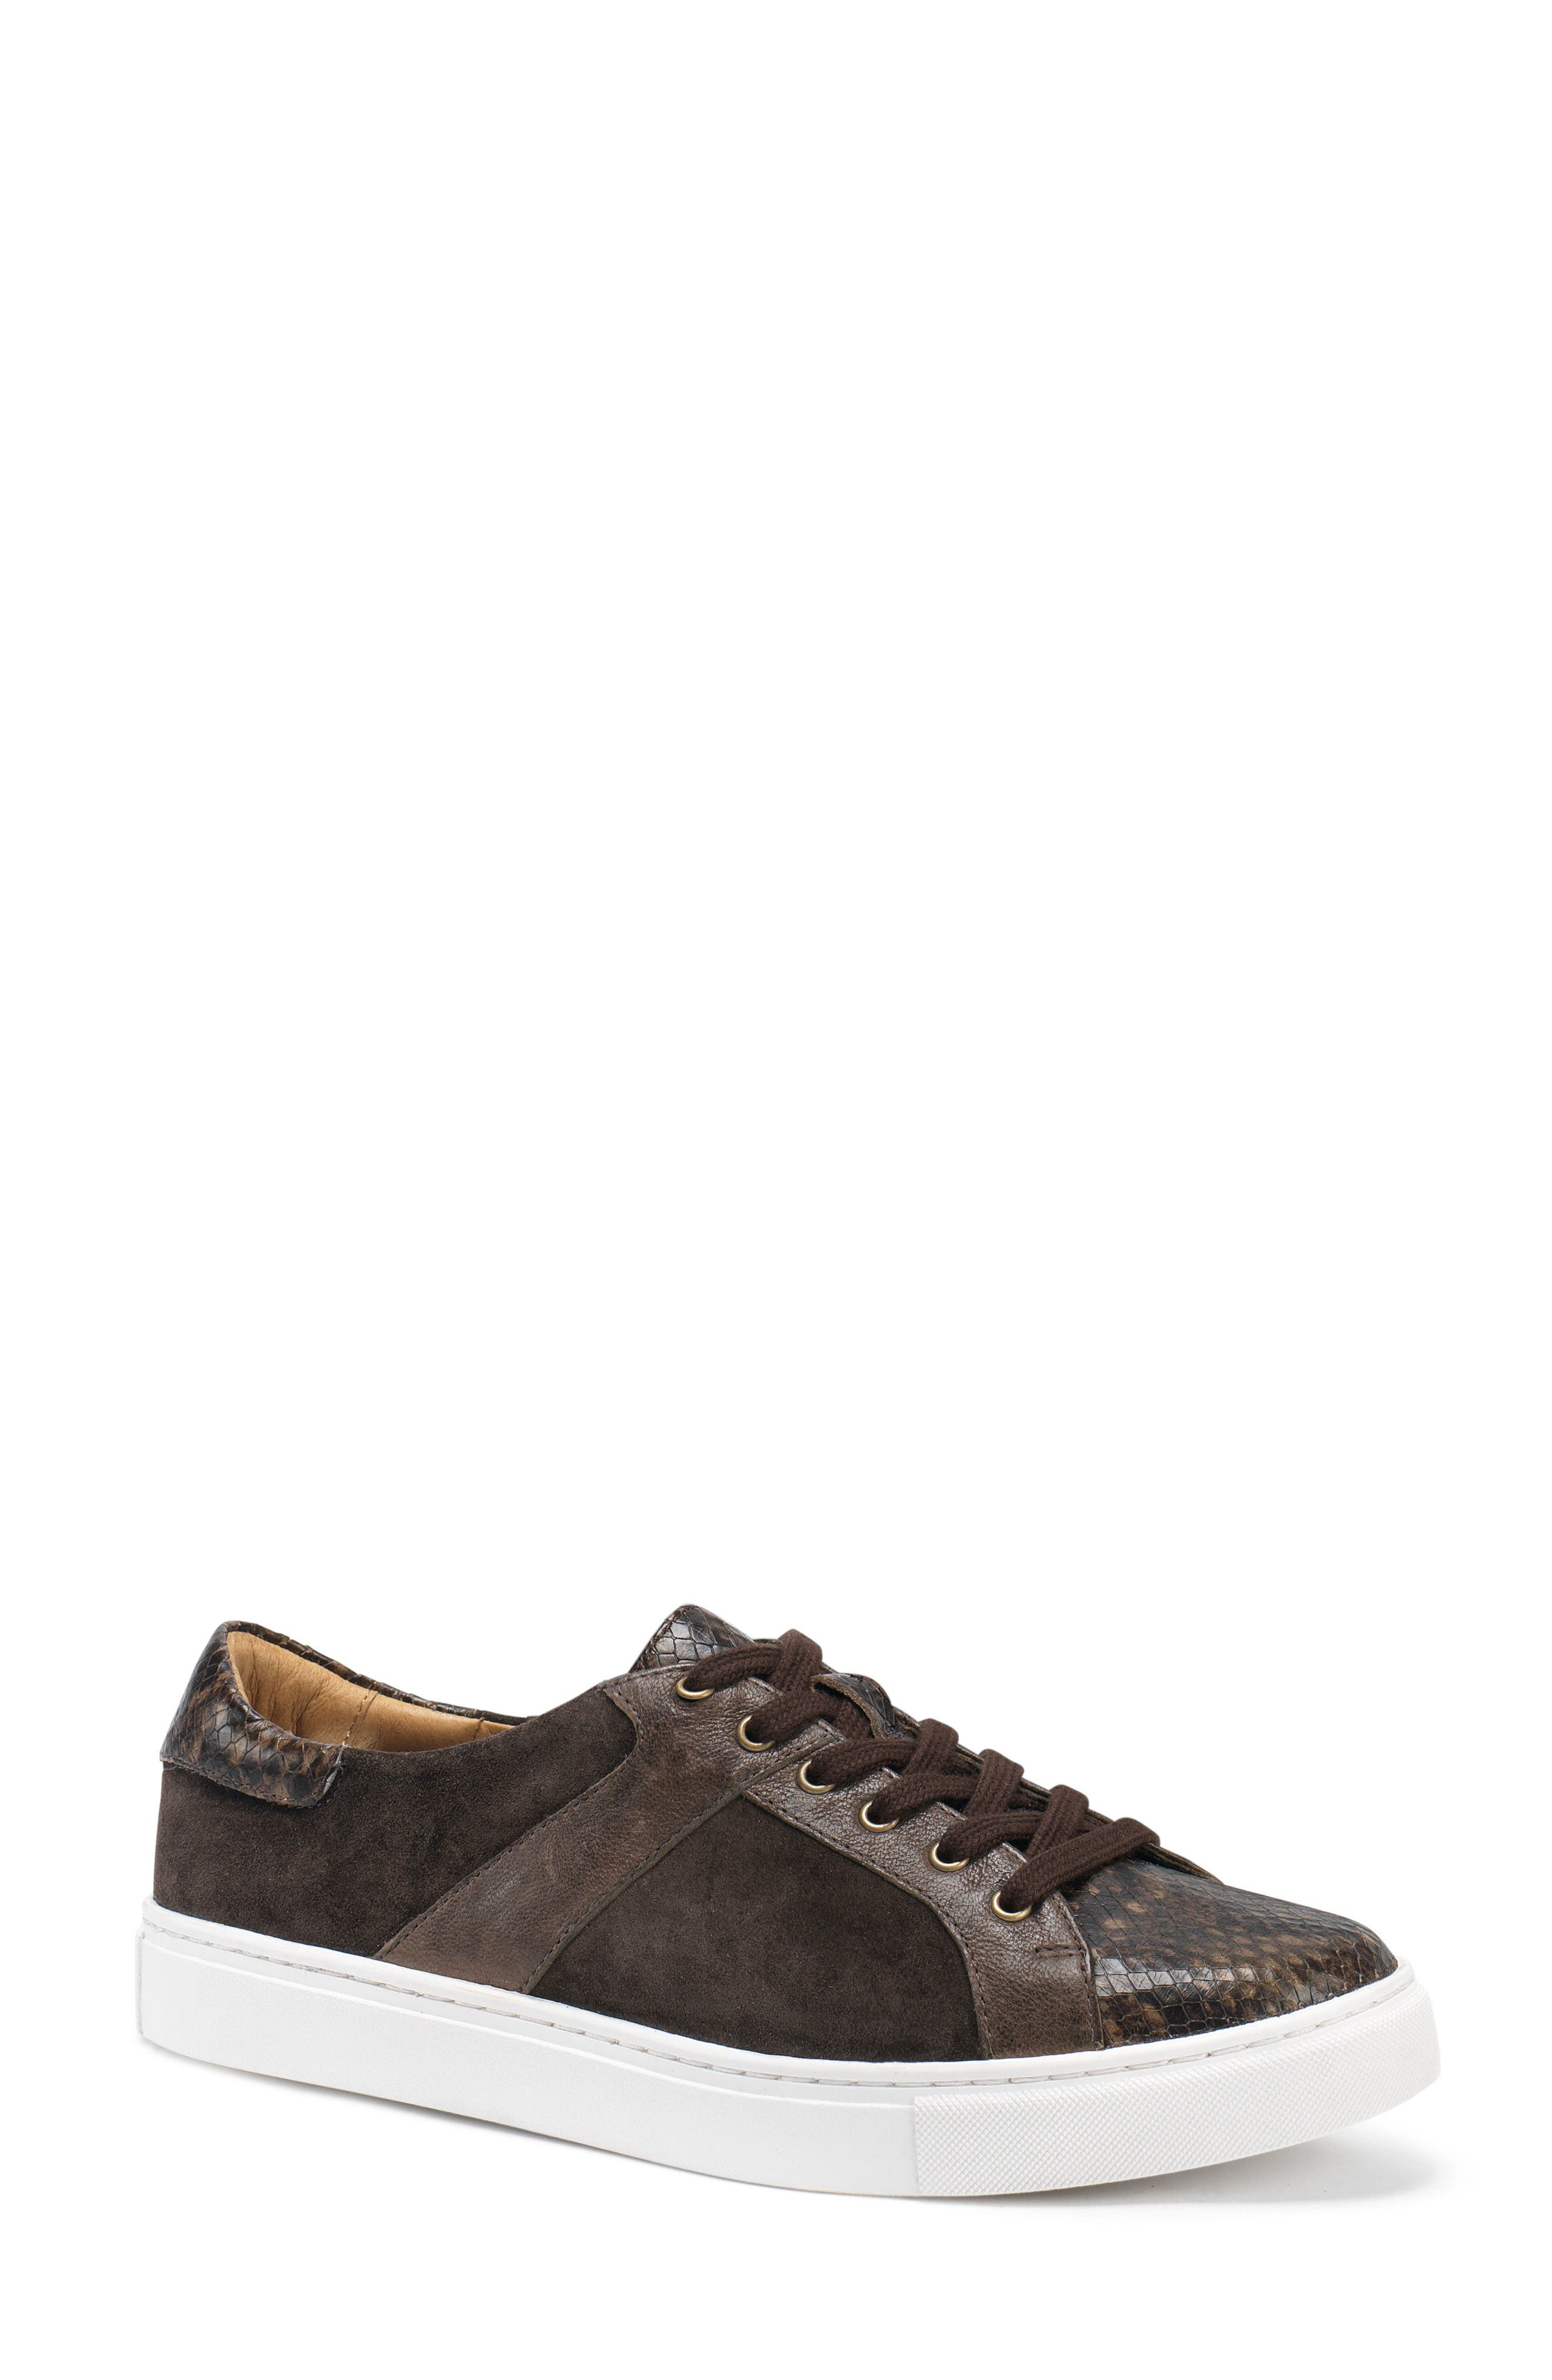 TRASK Lindsey Sneaker, Main, color, BROWN PRINT LEATHER